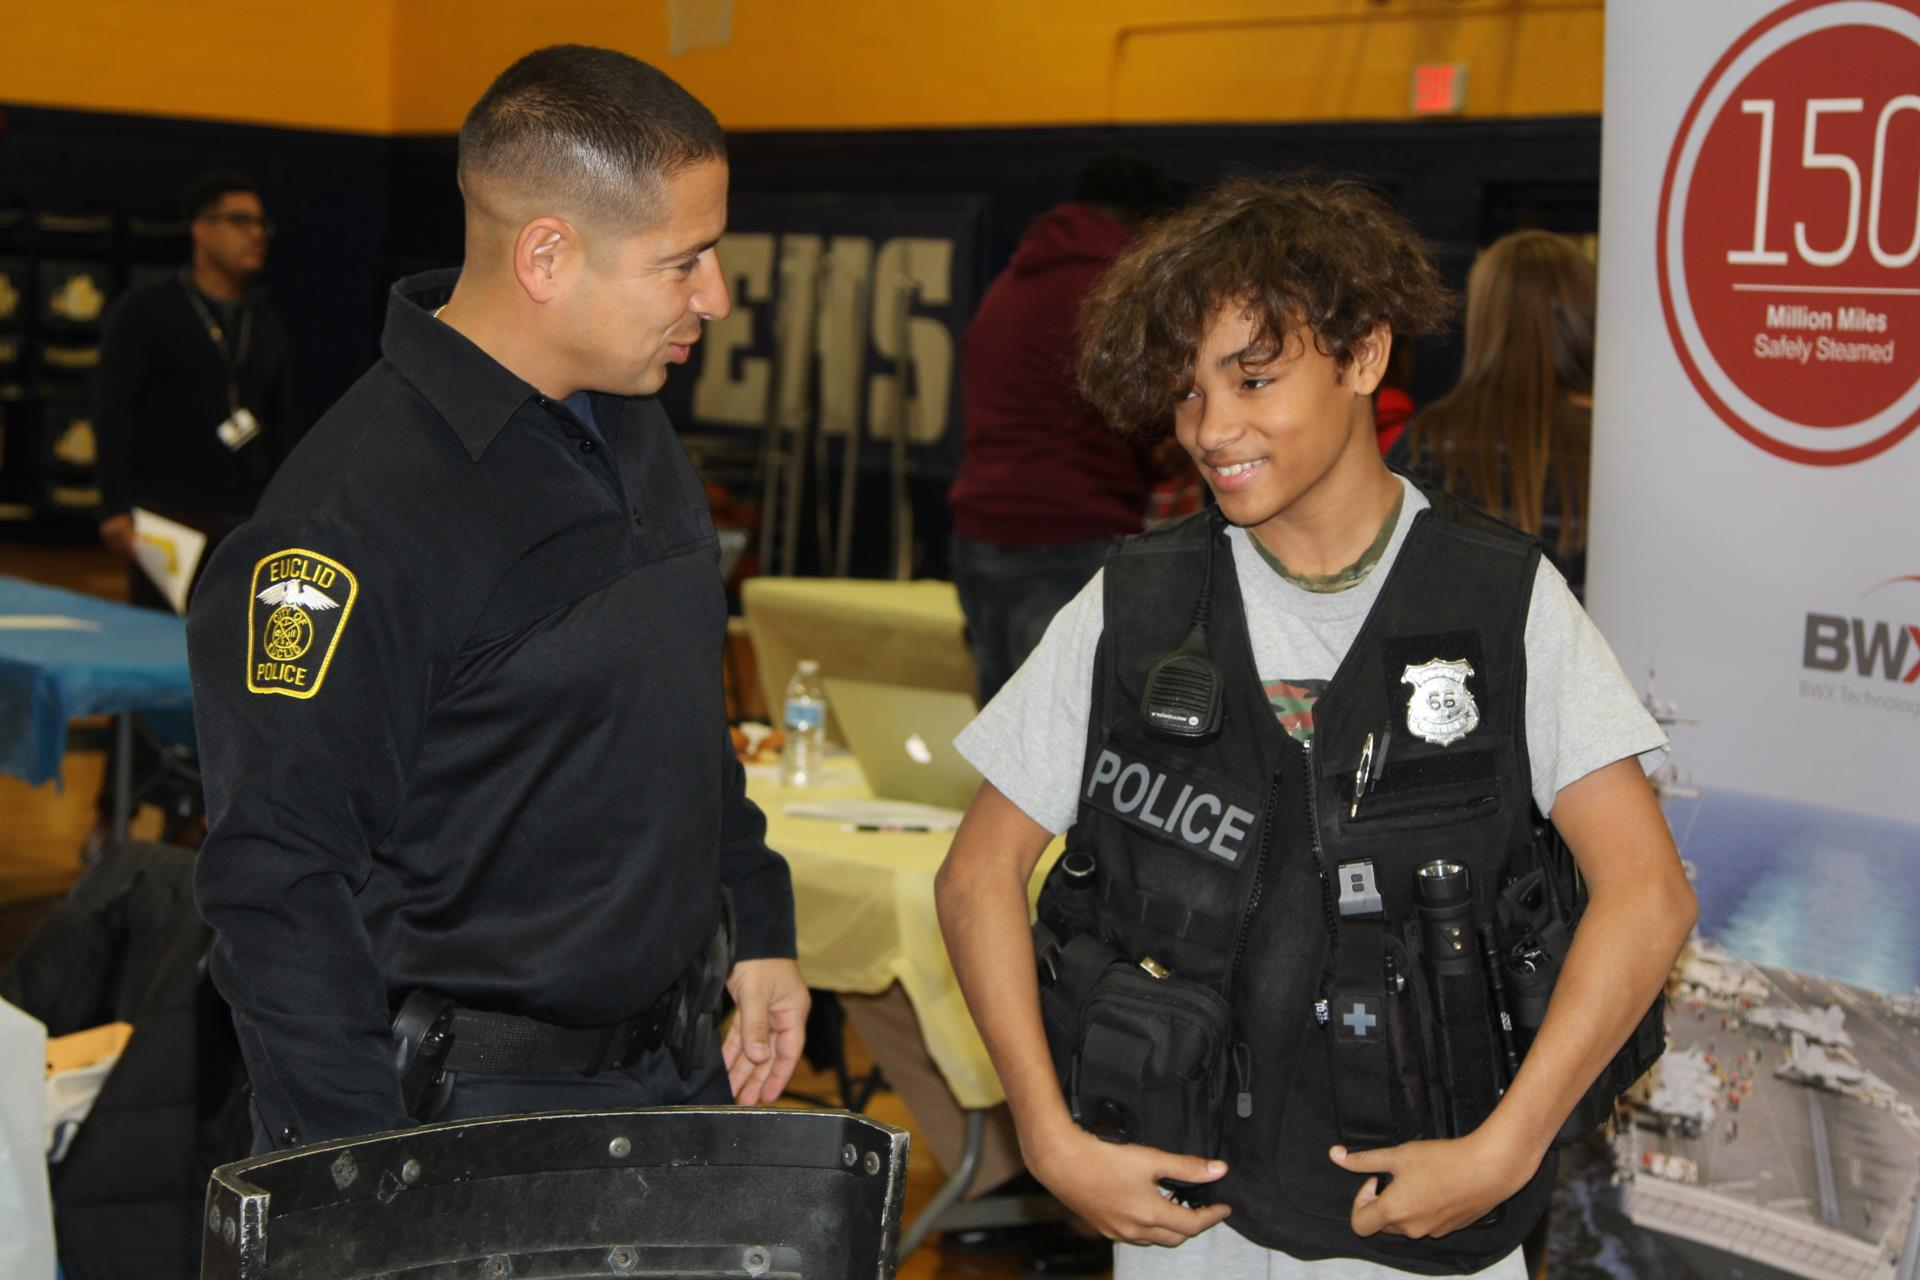 8th grade career fair - police officer and student